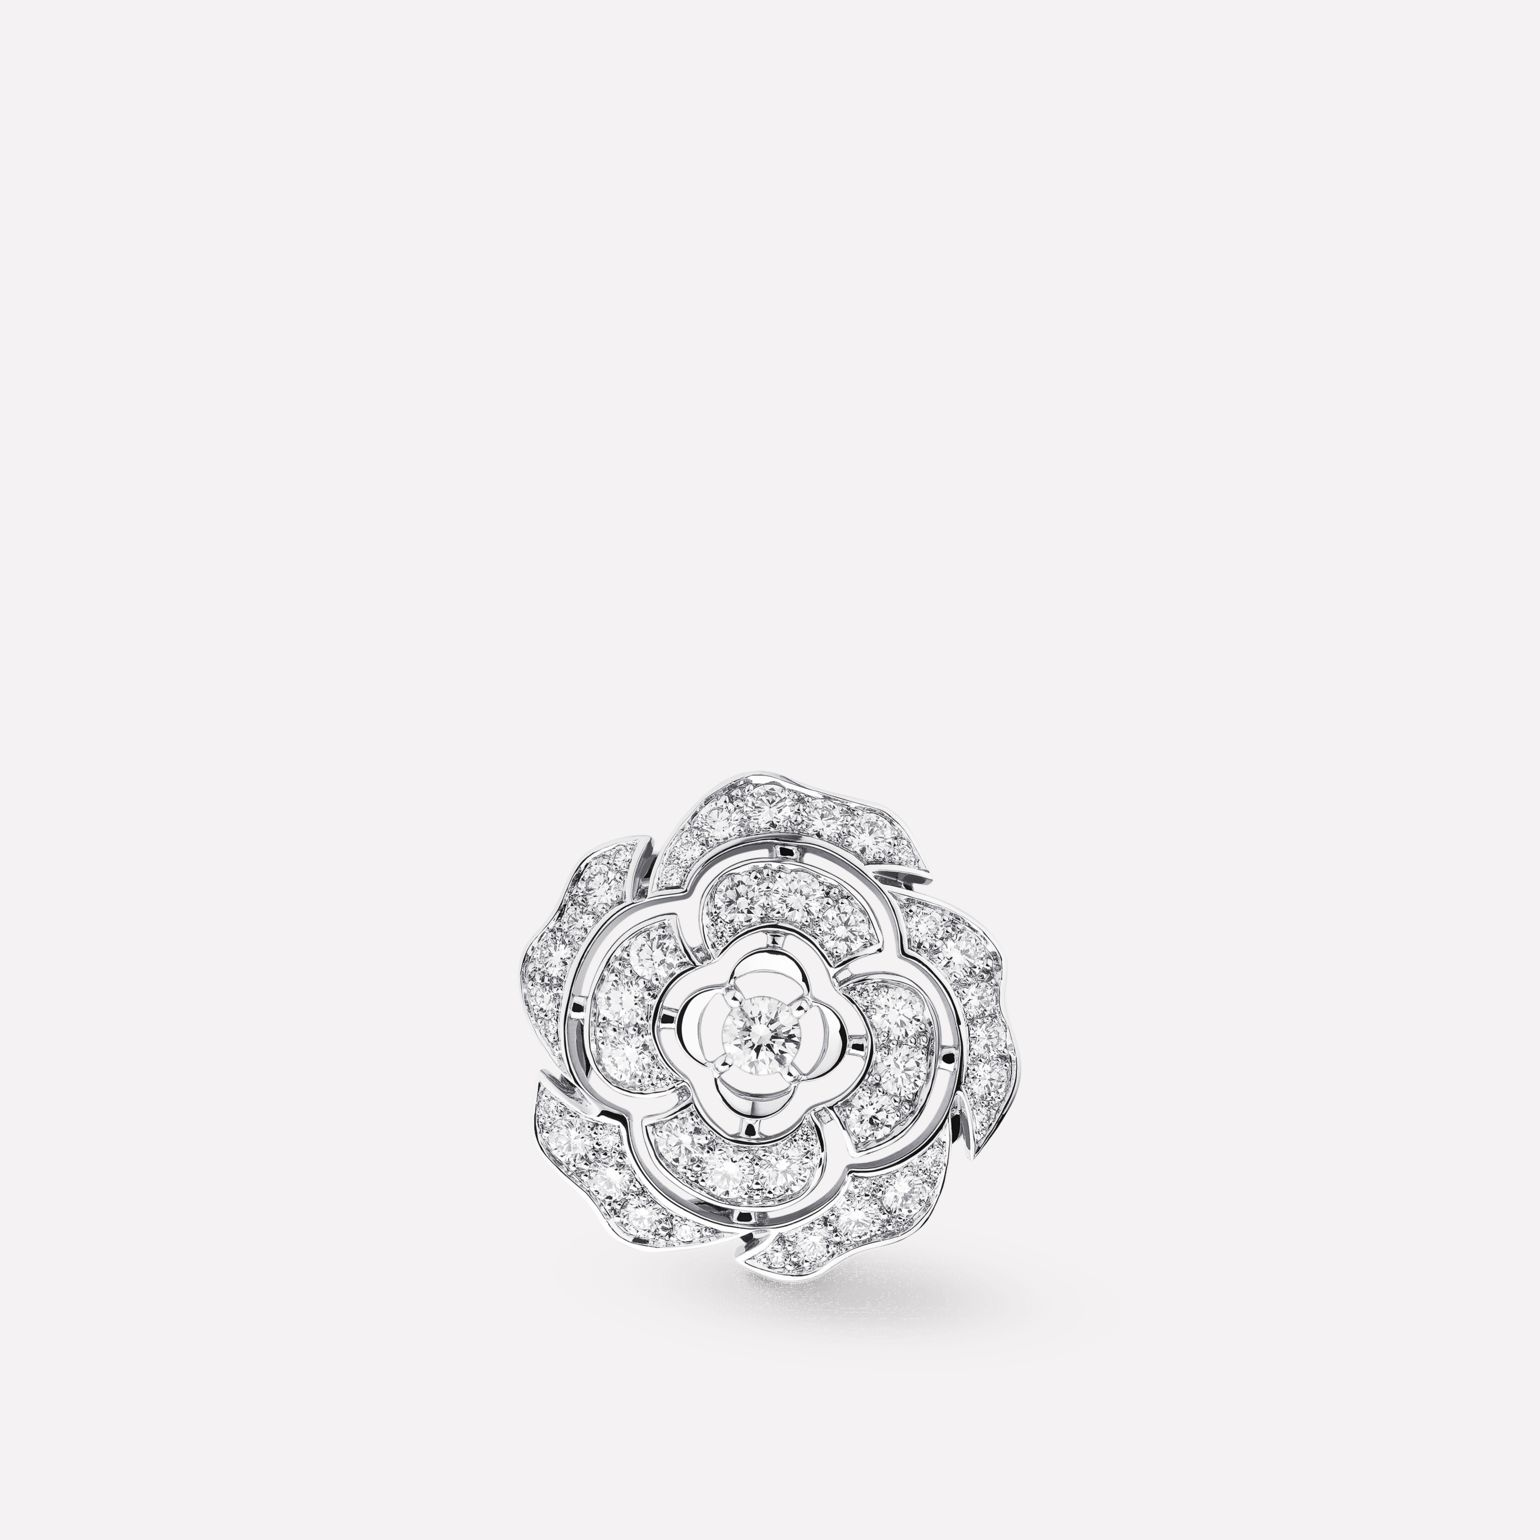 Broche Bouton de Camélia Or blanc 18 carats, diamants